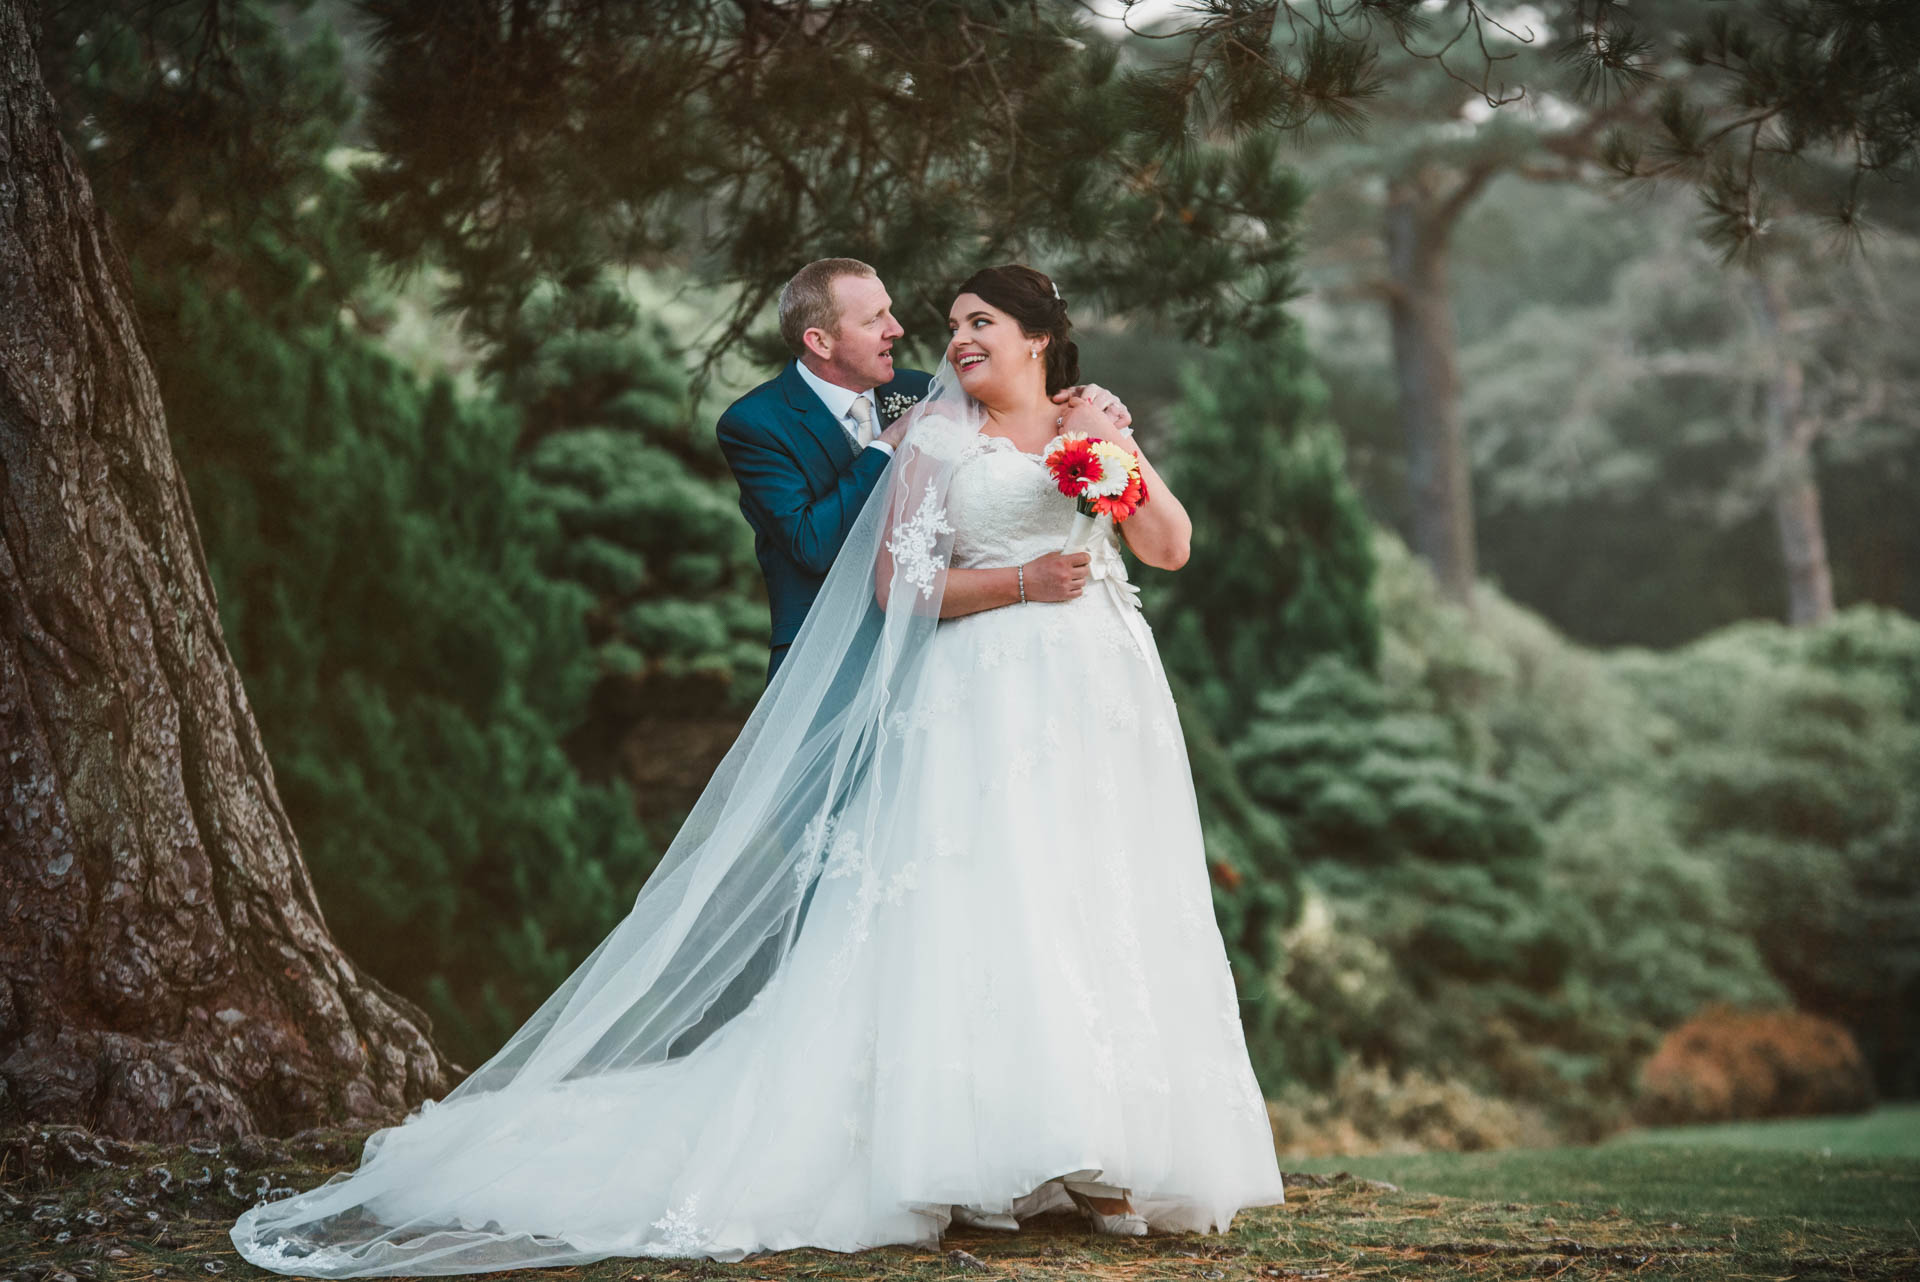 O♡D Wedding Day,  Killarney 26.11.2016 (reportage of the wedding as second photographer)